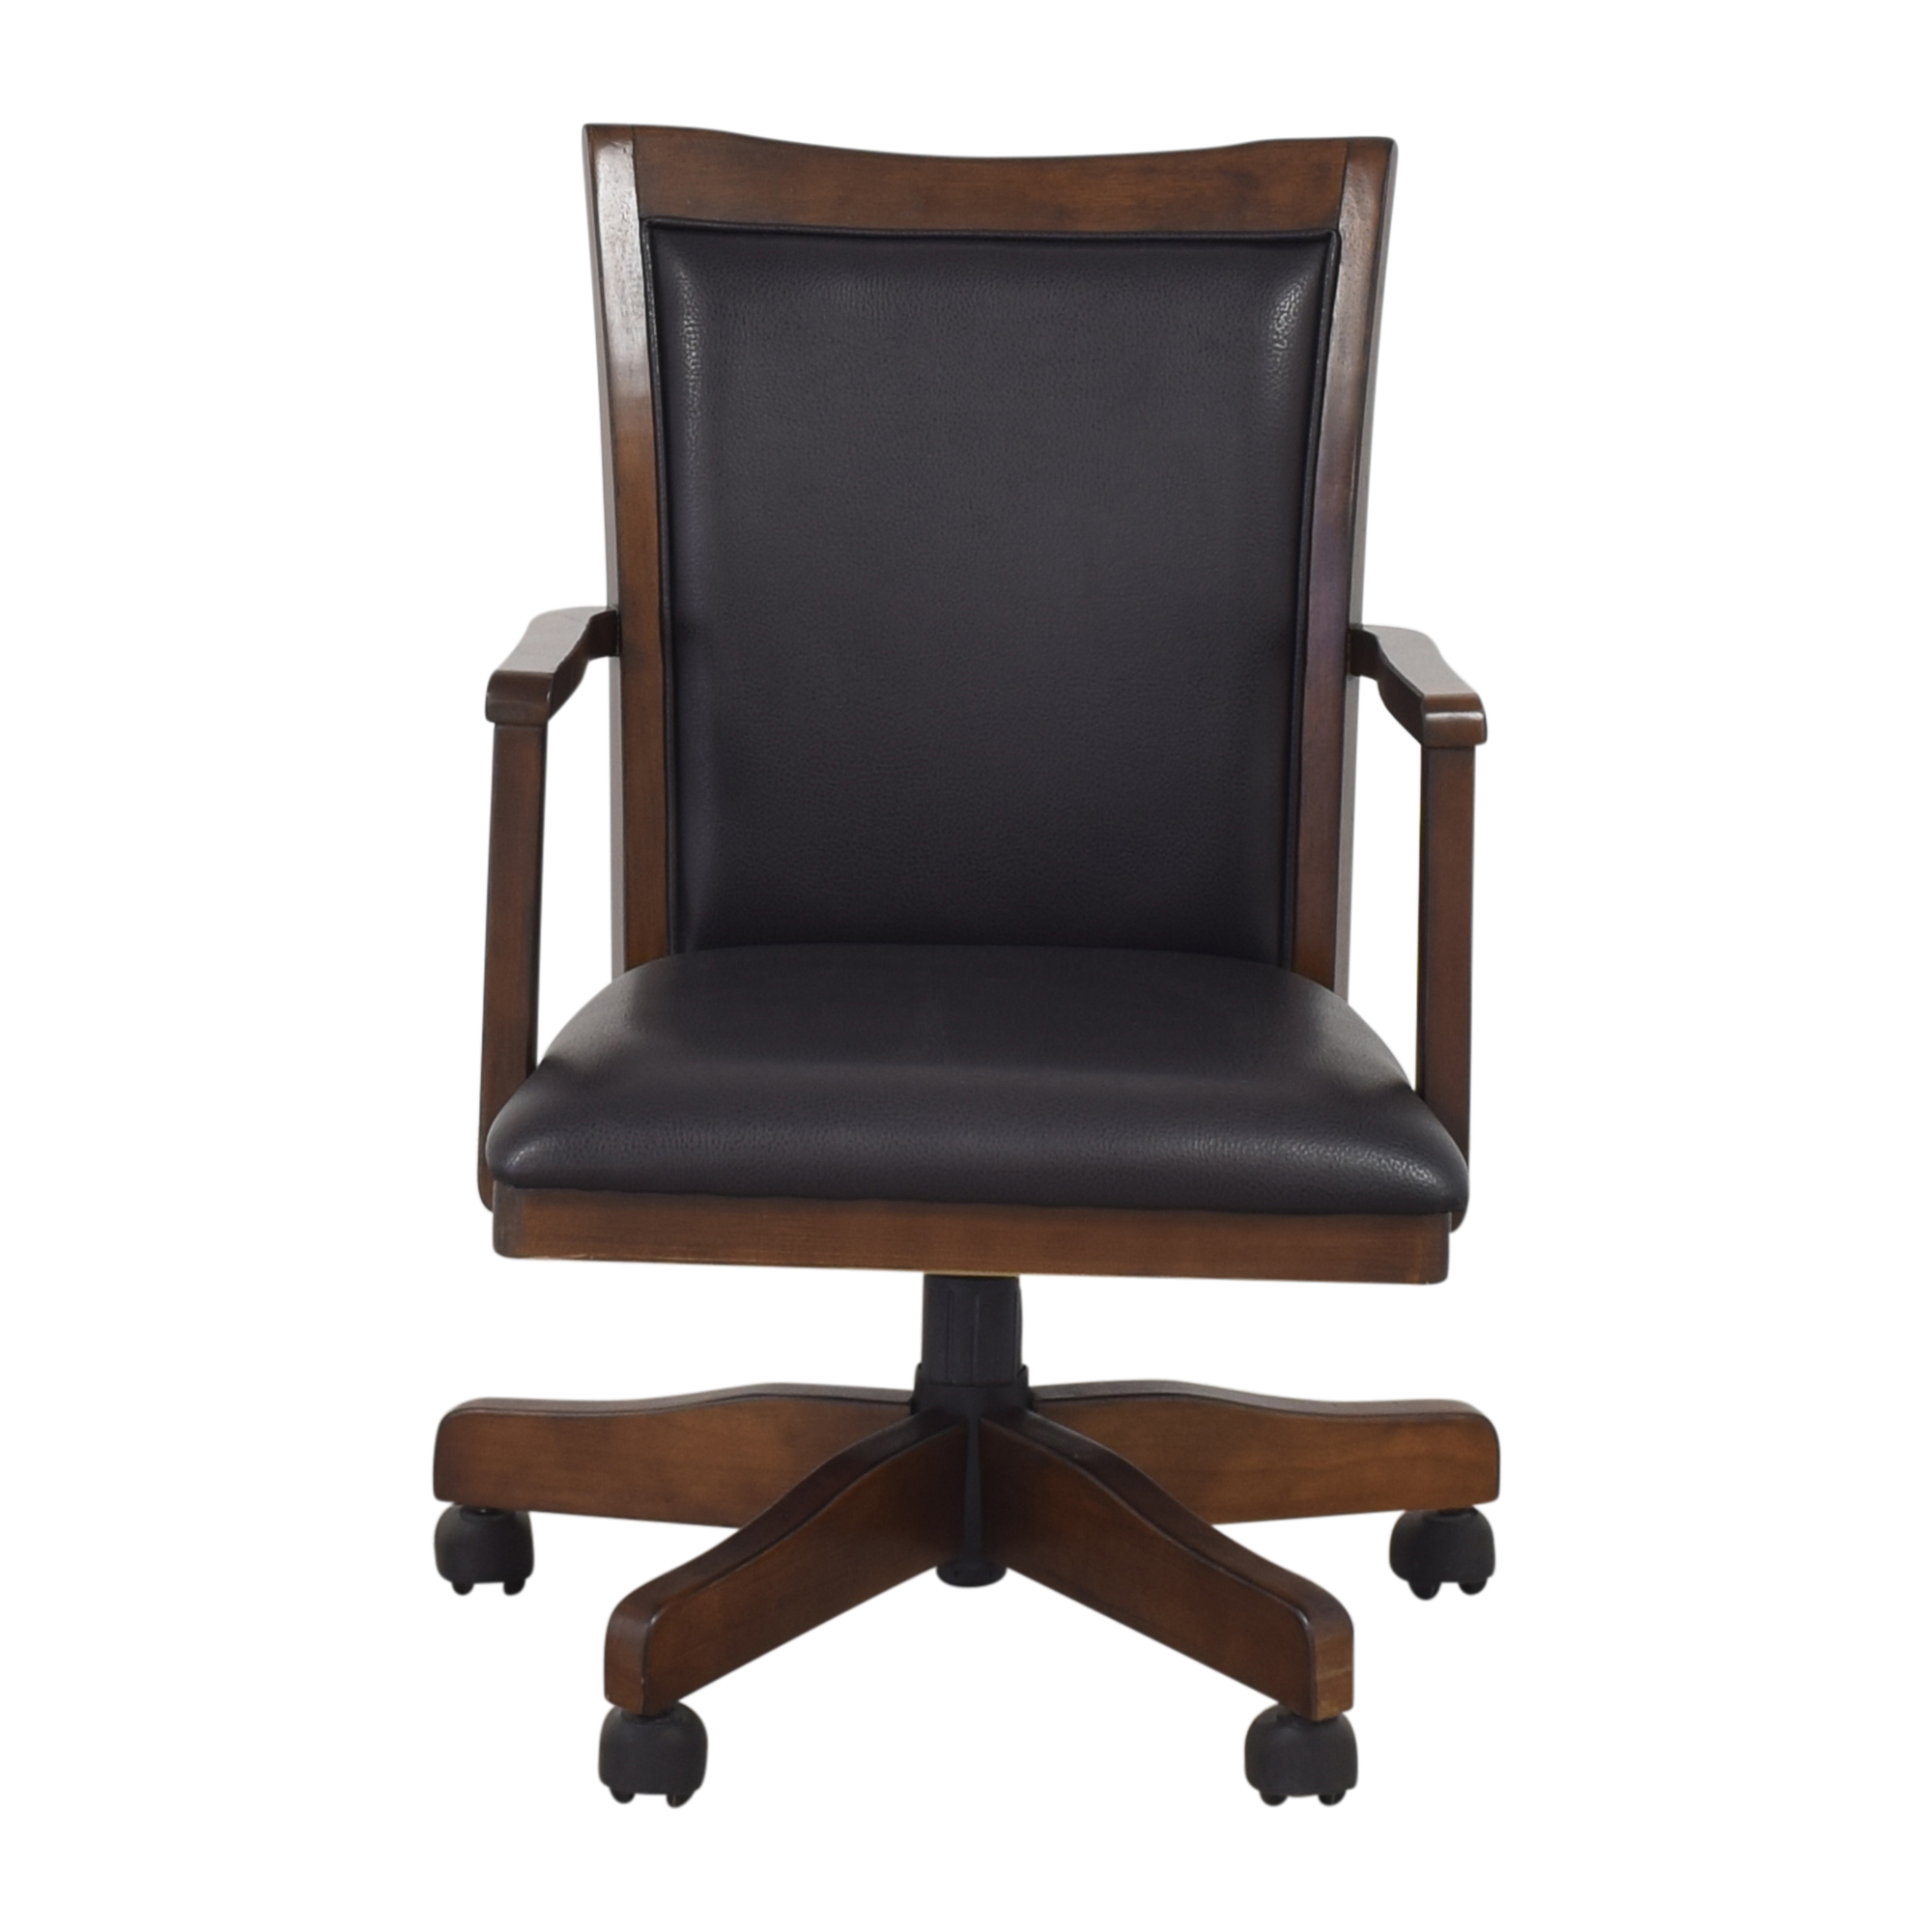 Ashley Furniture Hamlyn Desk Chair / Chairs